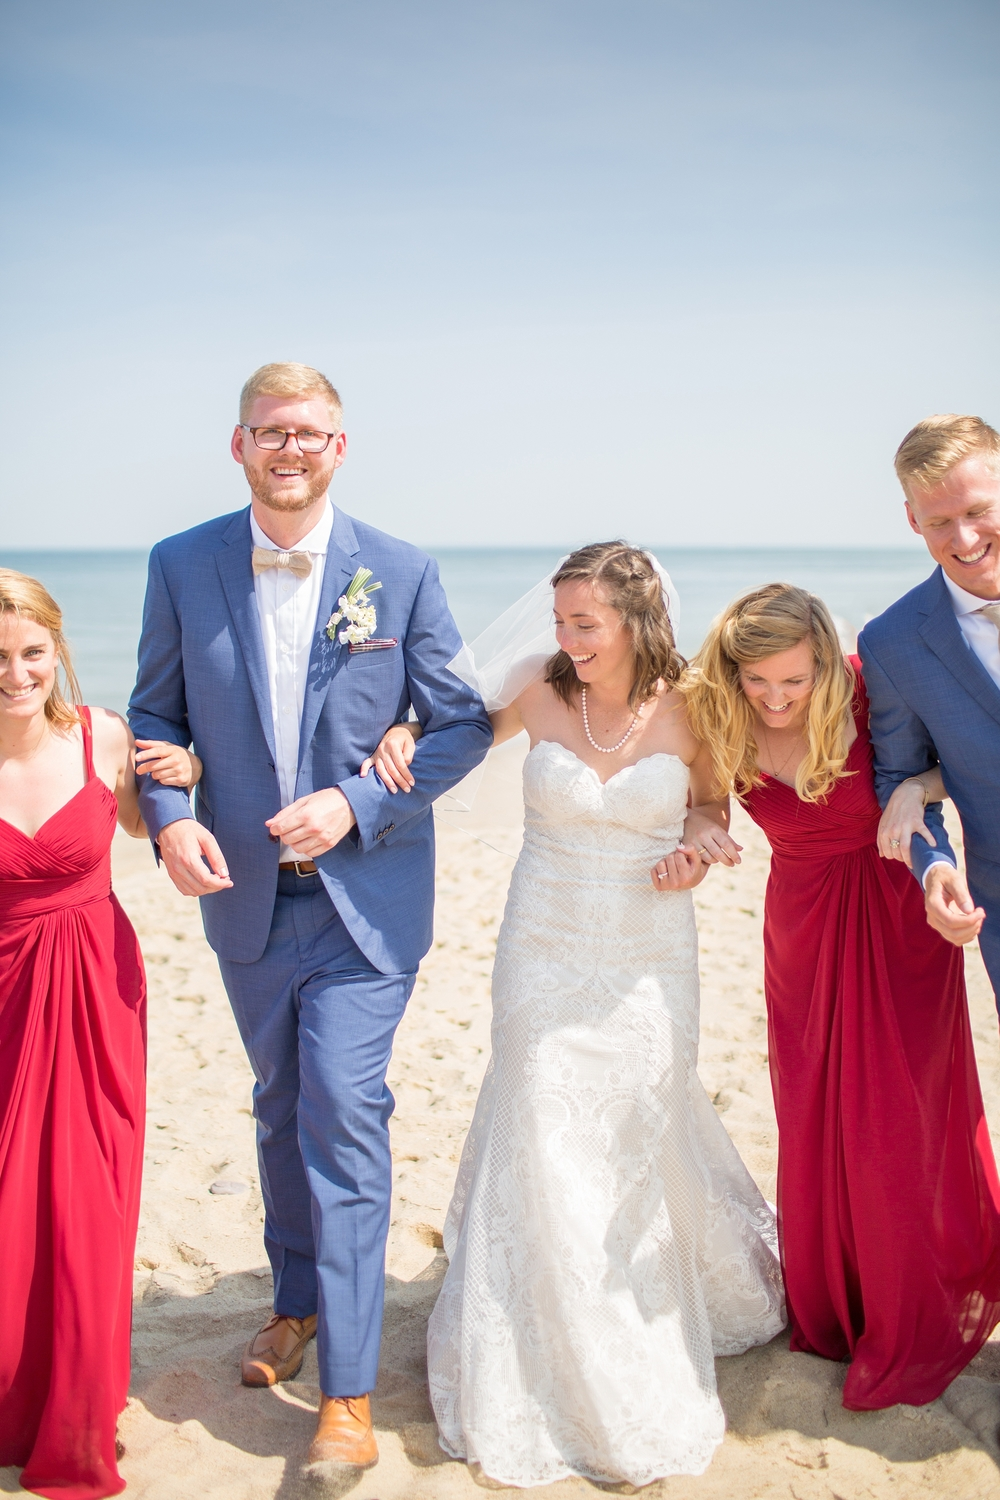 Goodman 4-Bridal Party-416_anna grace photography wellfleet cape cod massachusetts destination wedding photographer Chequessett Yacht and Country Club wedding photo.jpg